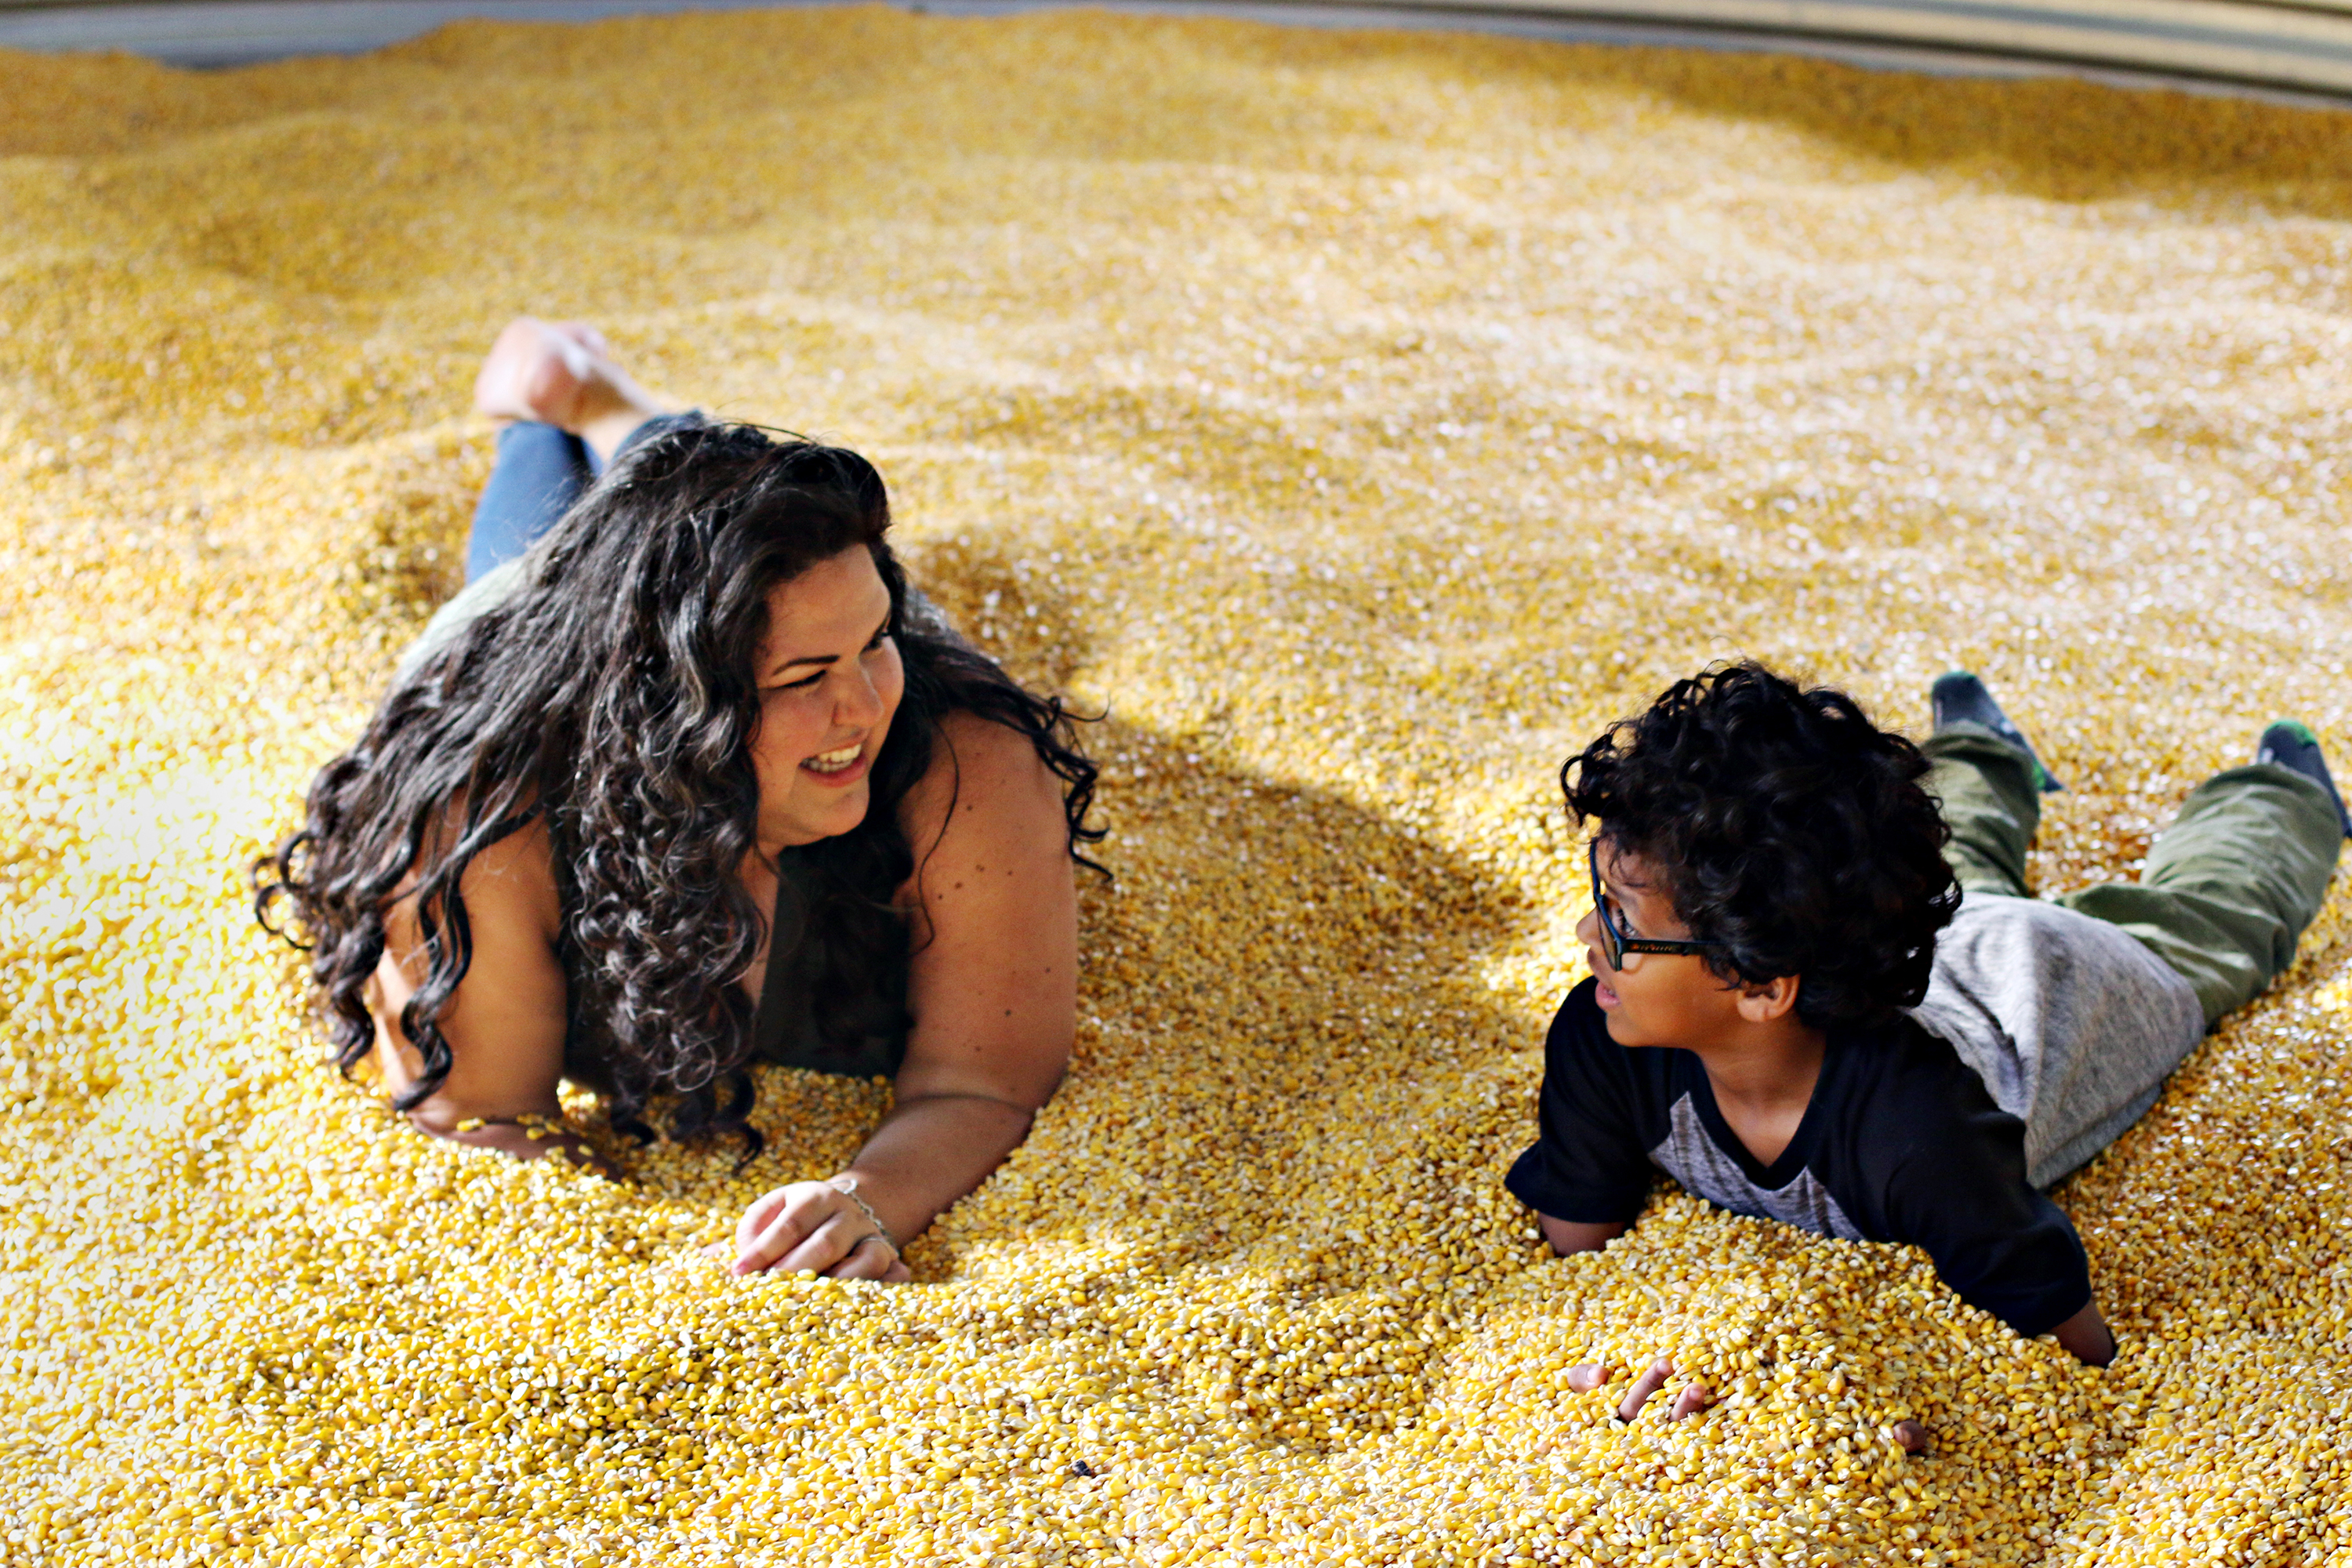 Mom and son looking at each other and smiling in the corn pit at The Rock Ranch.